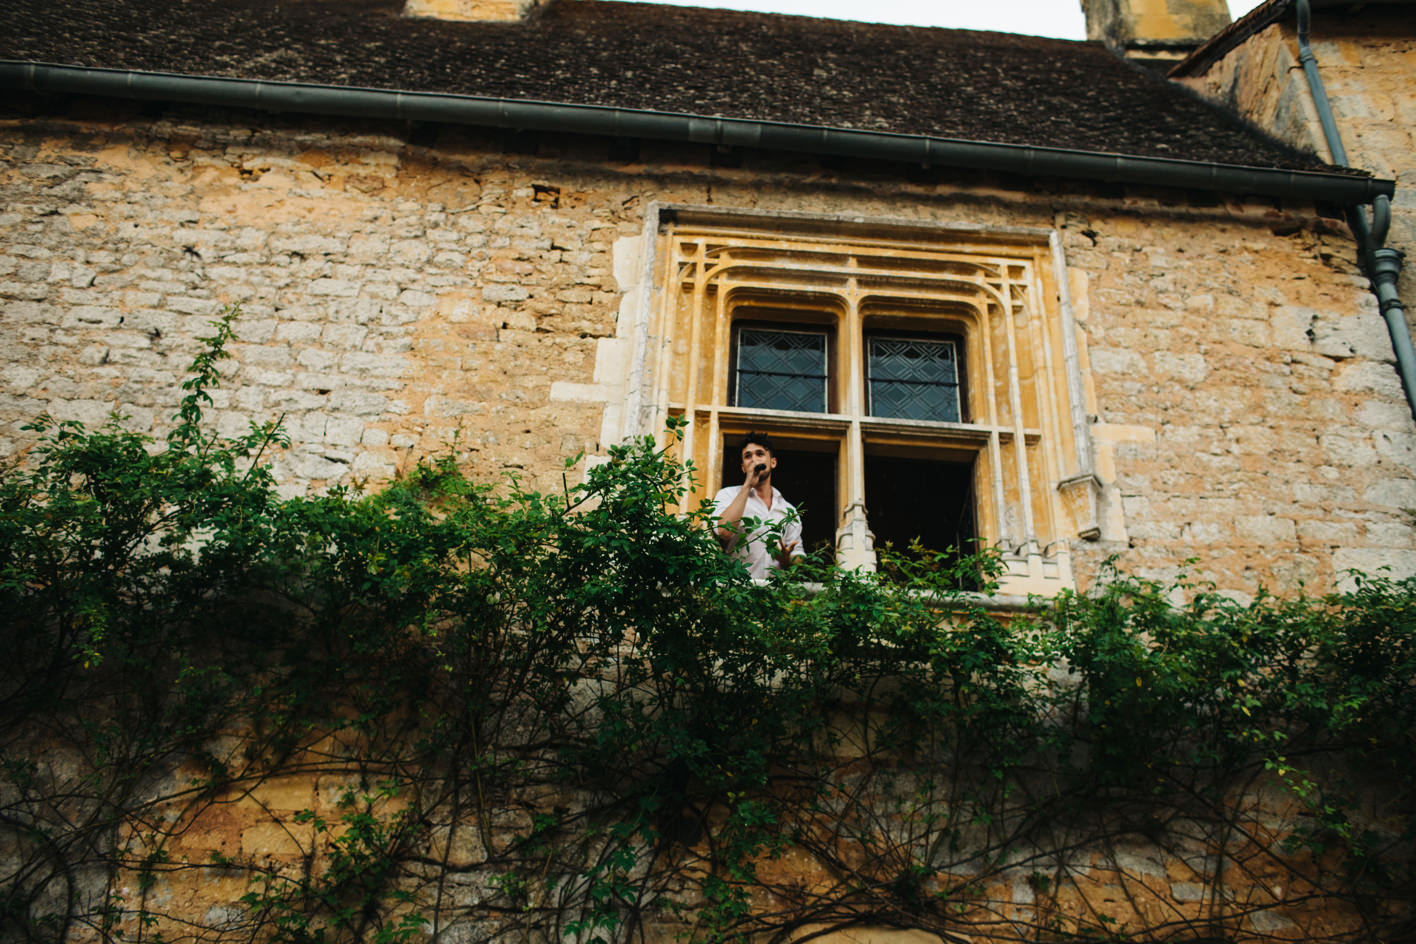 tenor sings from chateau window